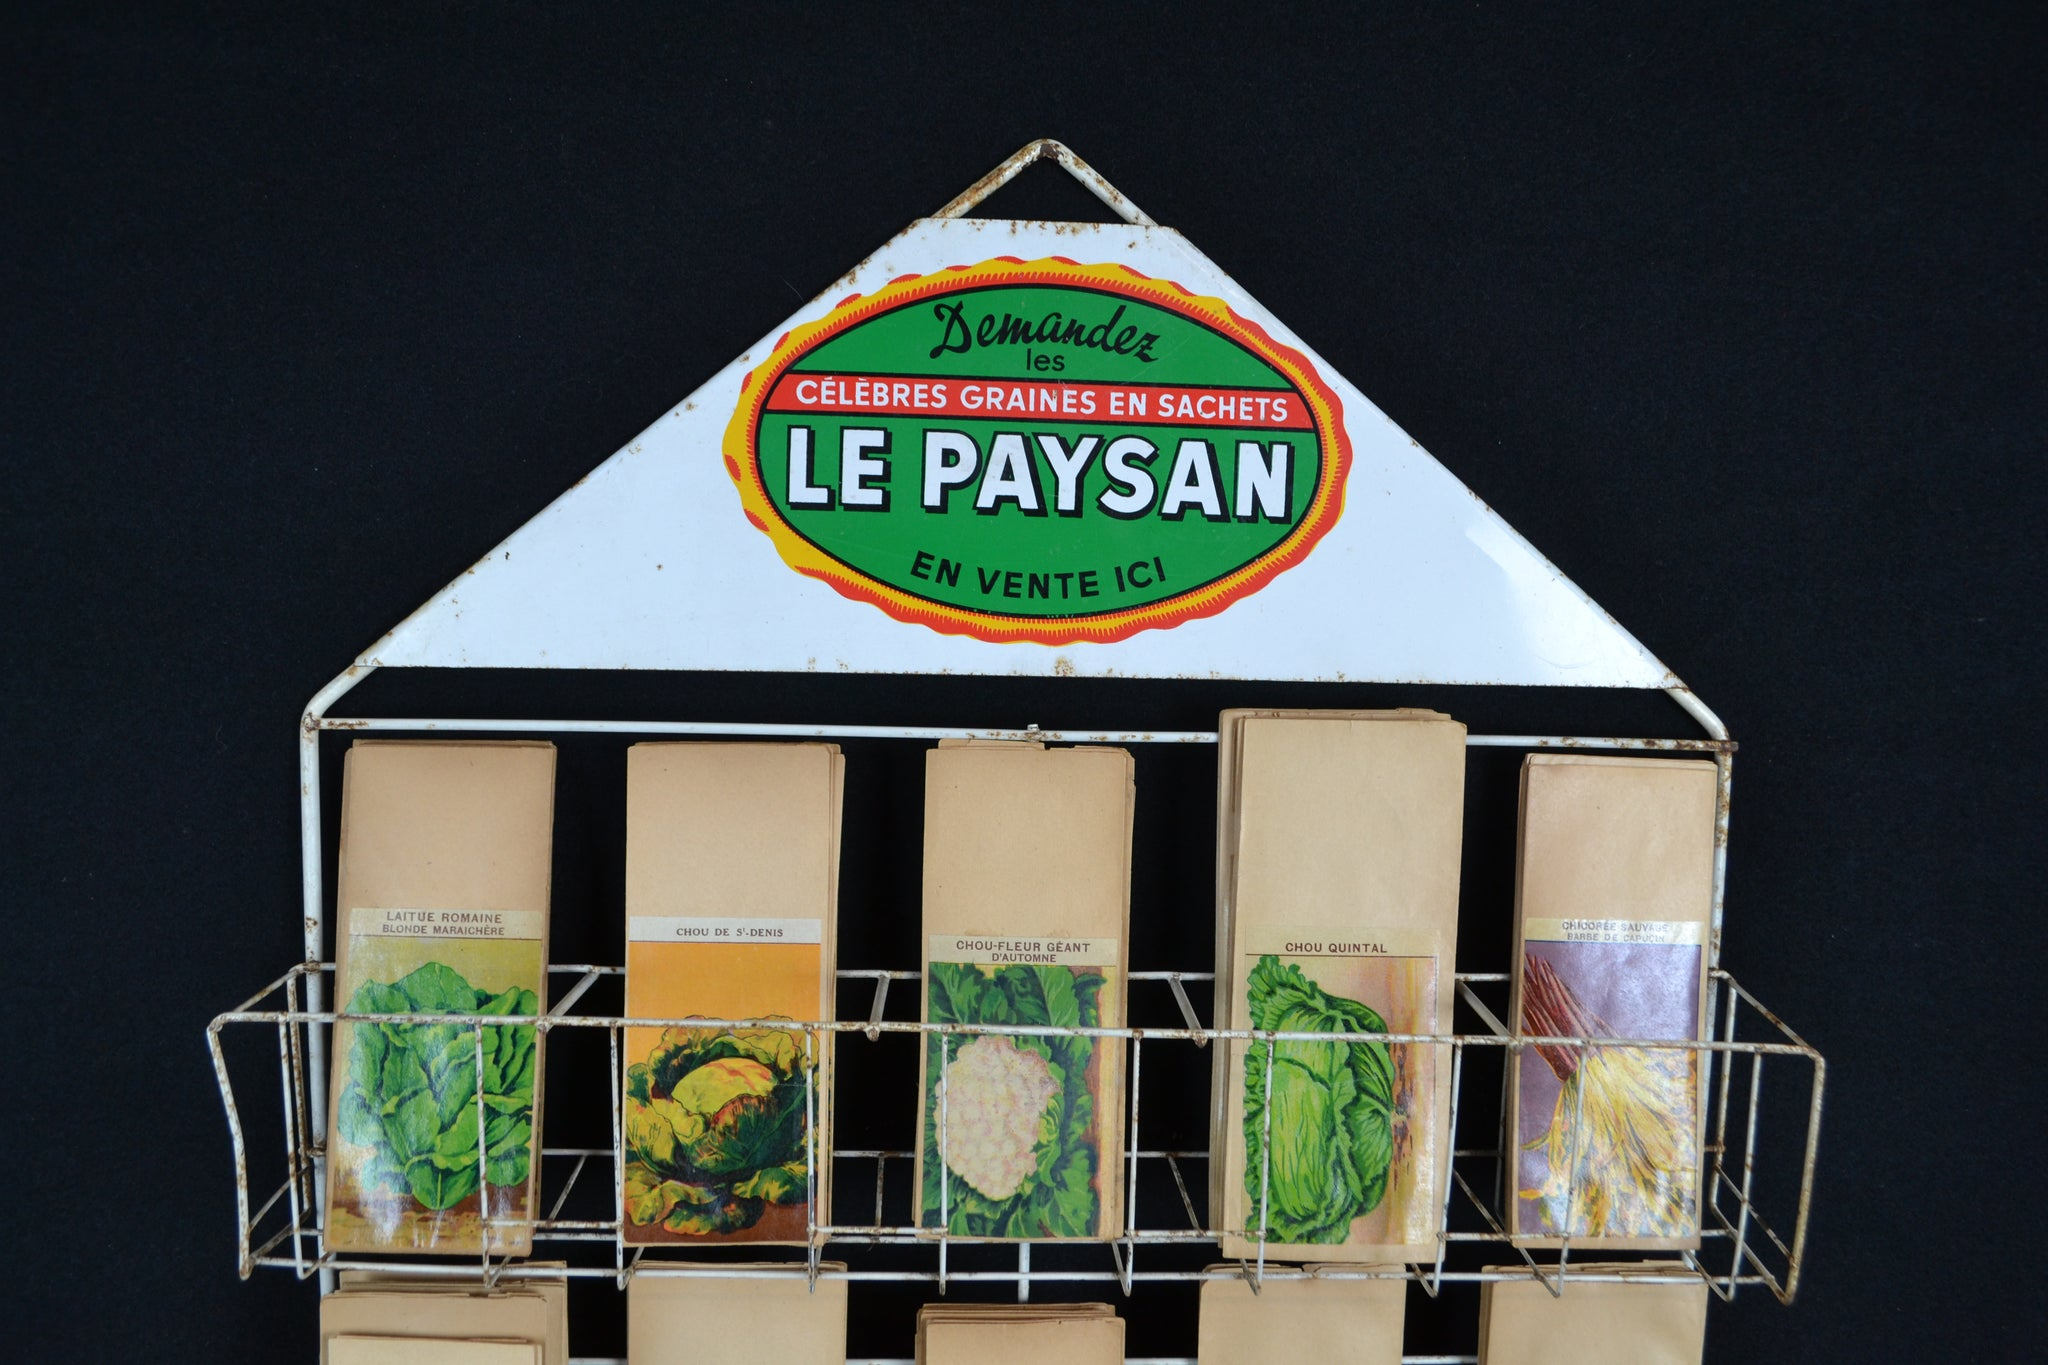 'Le Paysan Seeds' packet display stand